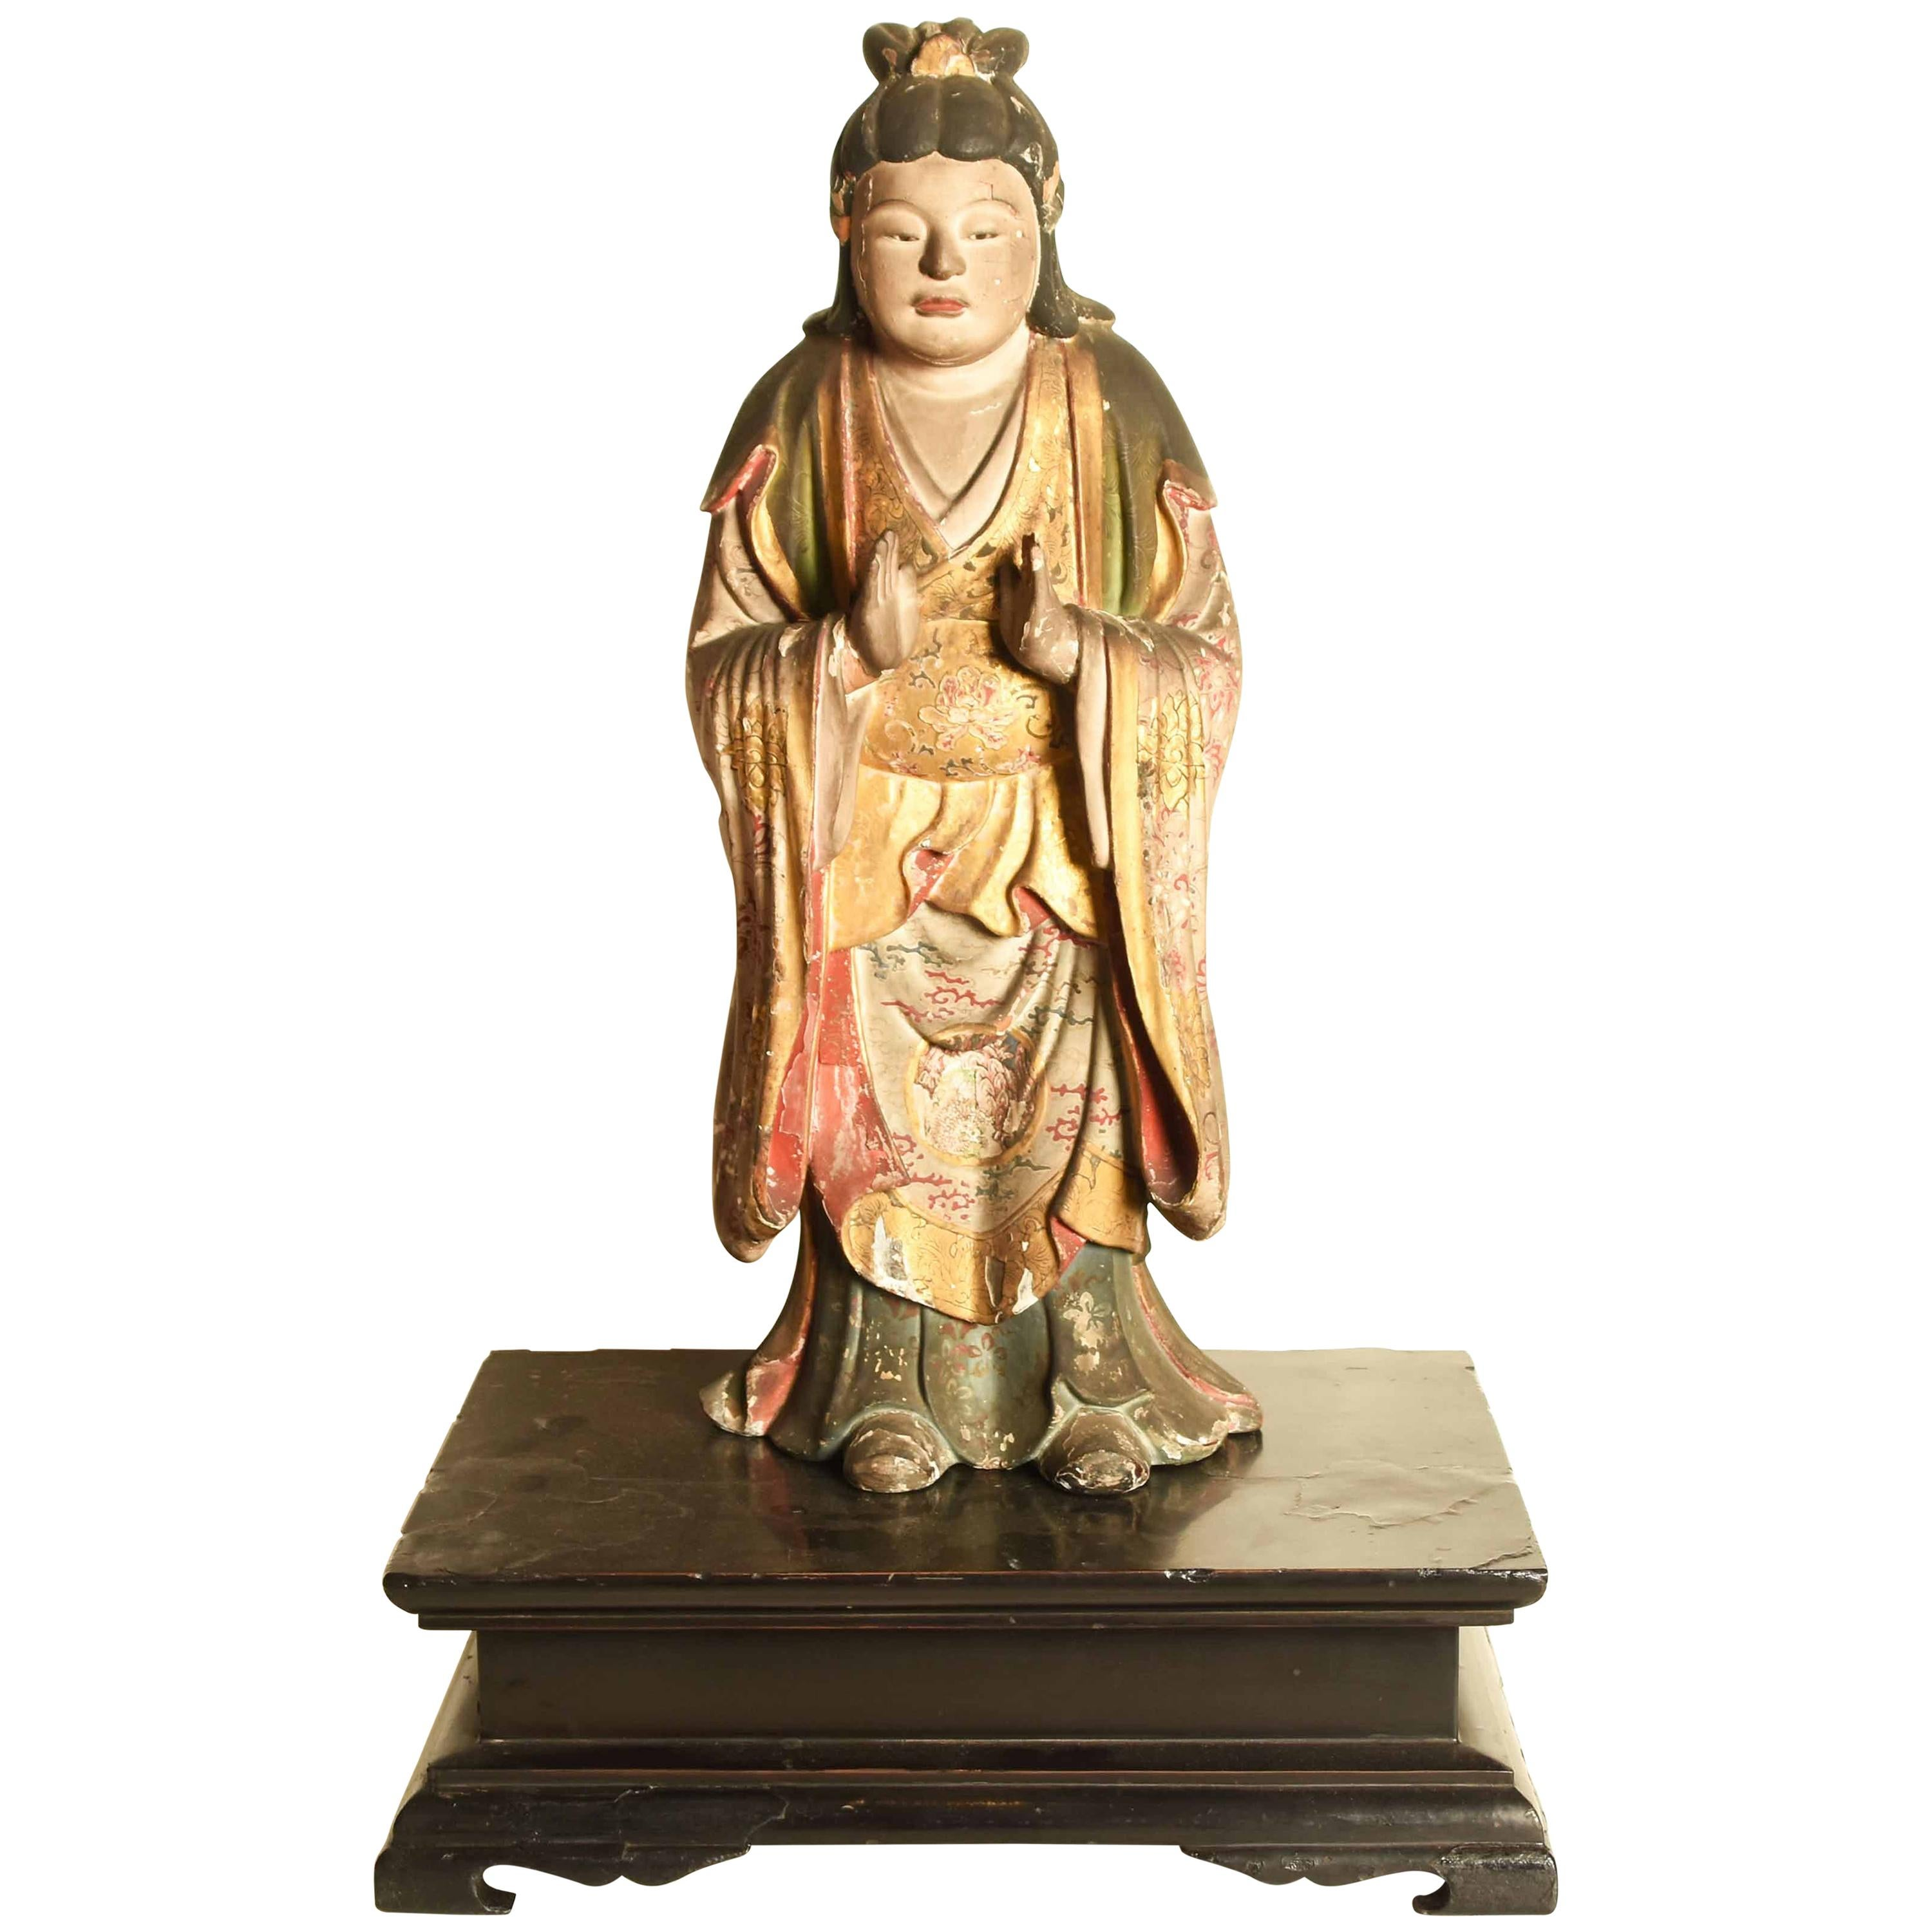 Antique Japanese Gilded Statue of a Shinto God, Momoyama Period